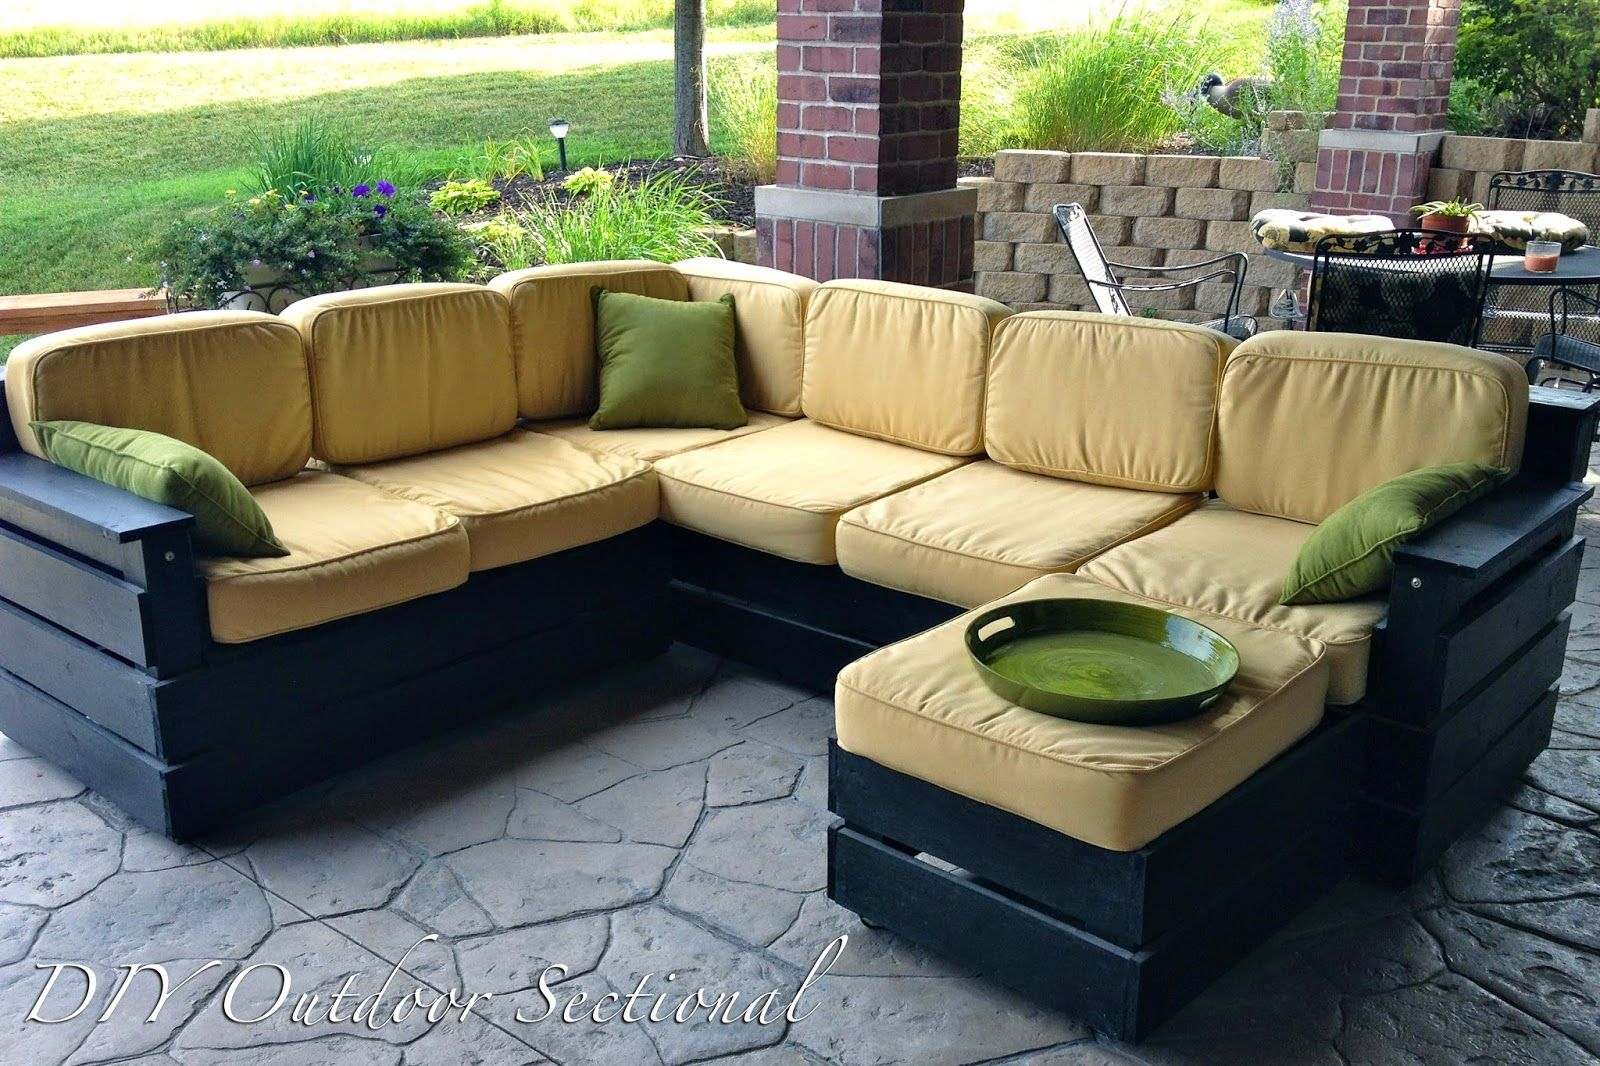 Diy Spend Outdoor Sectional Projects